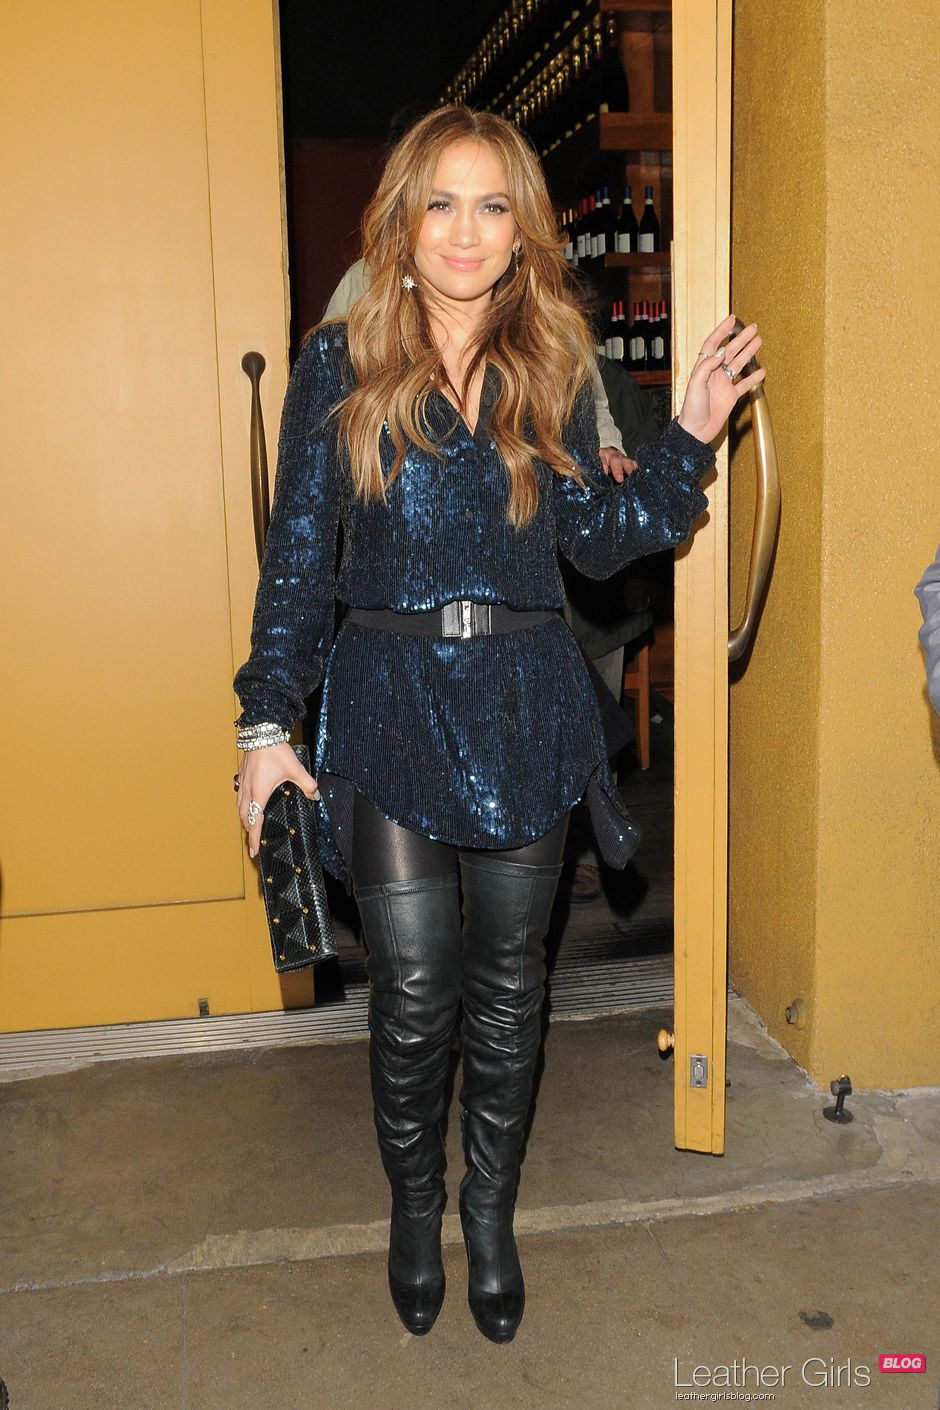 christian louboutin over the knee boots